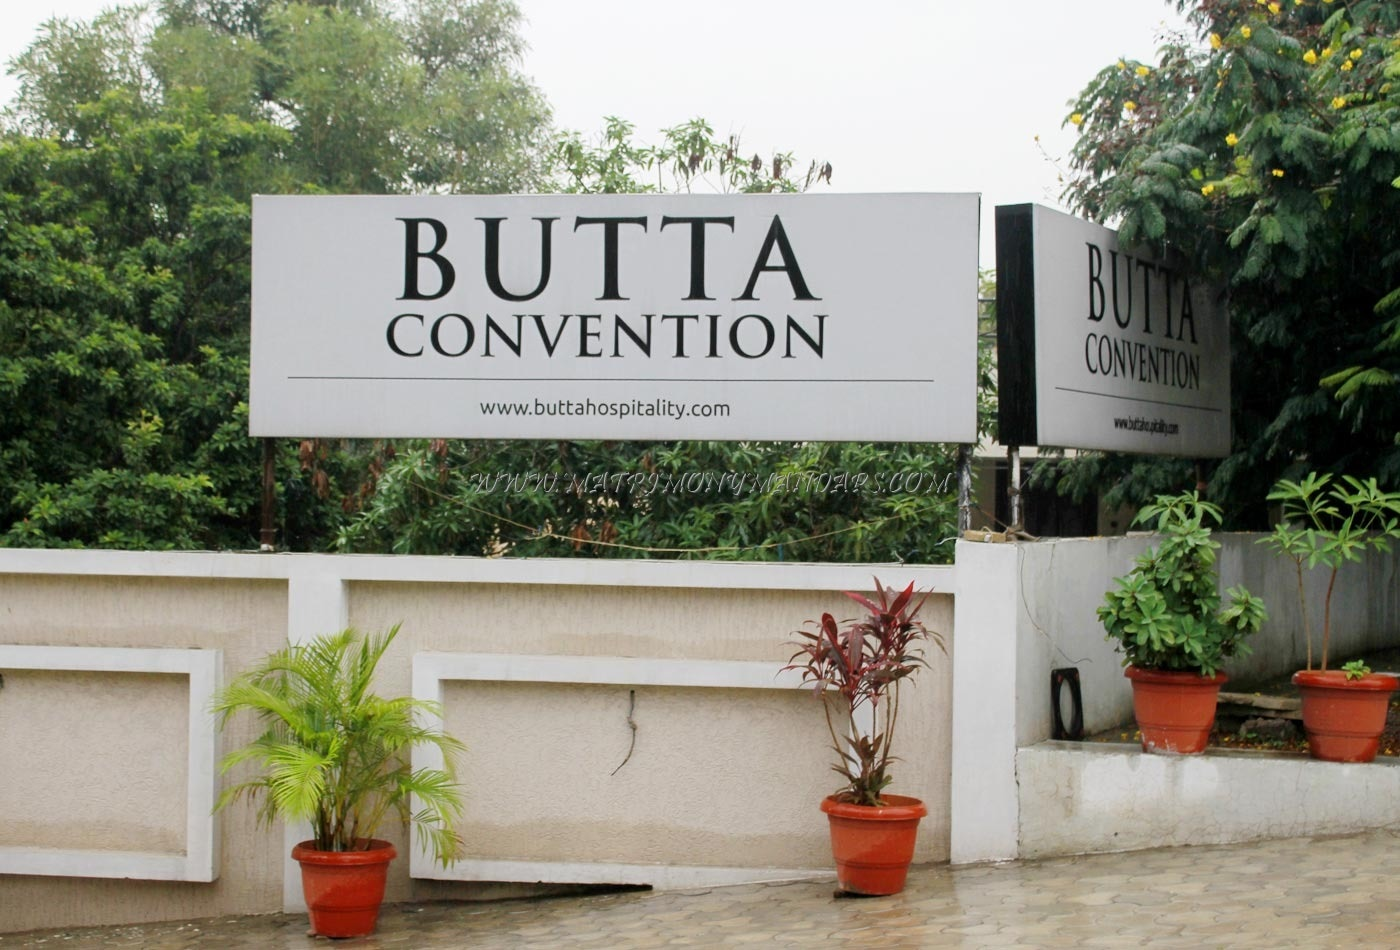 Butta Convention - Outside View